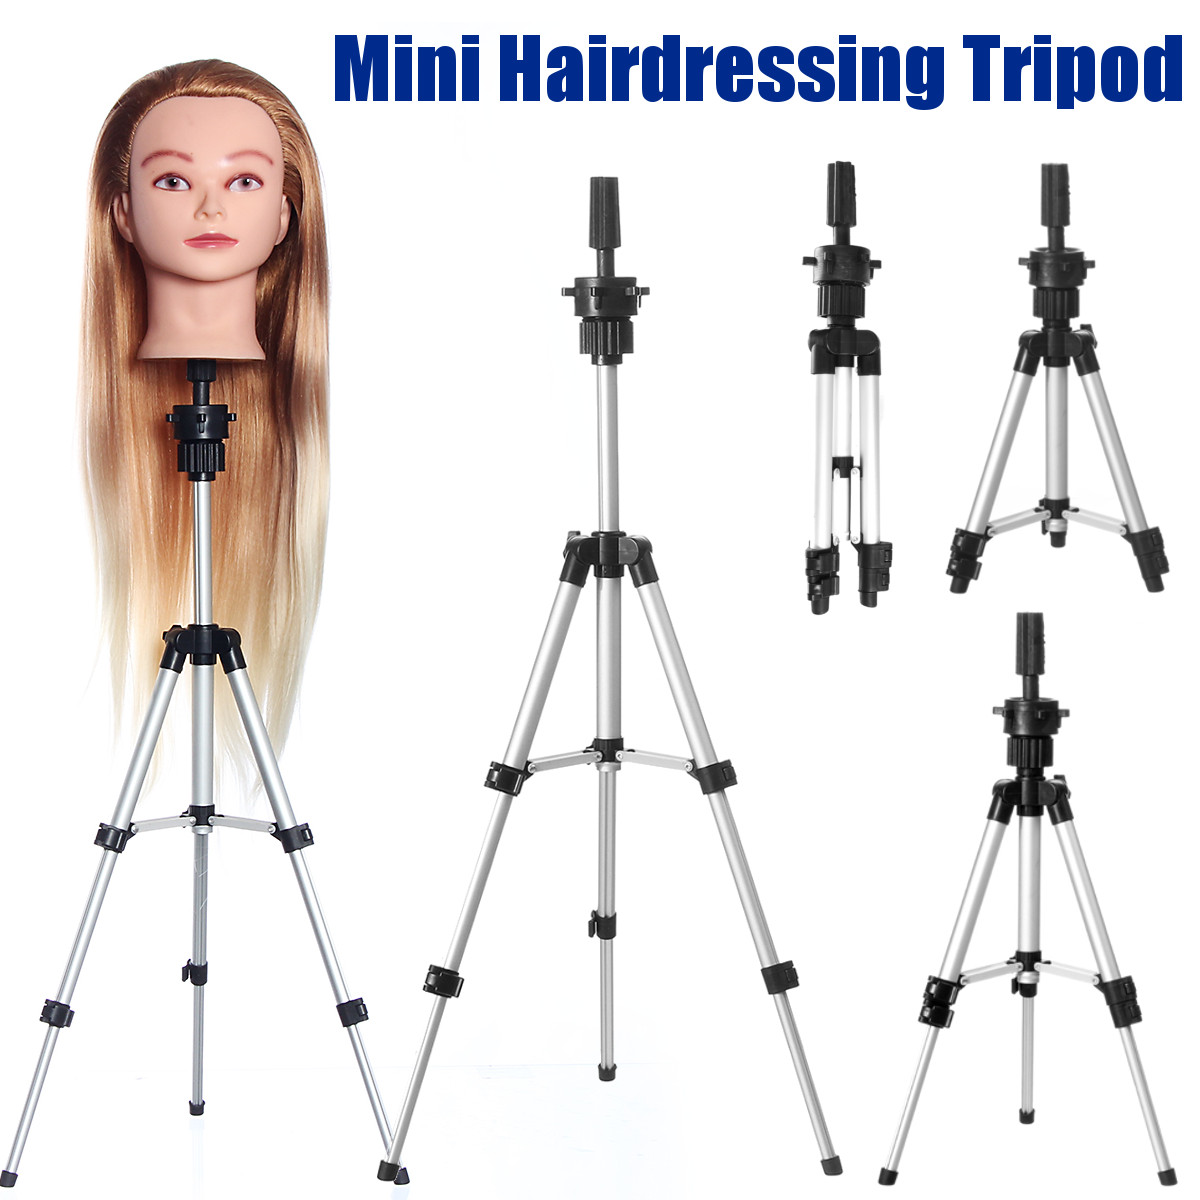 Adjustable Tripod Stand Holder Mannequin Head Tripod Hairdressing Training Head Holder Hair Stand Hair Trainning Tool